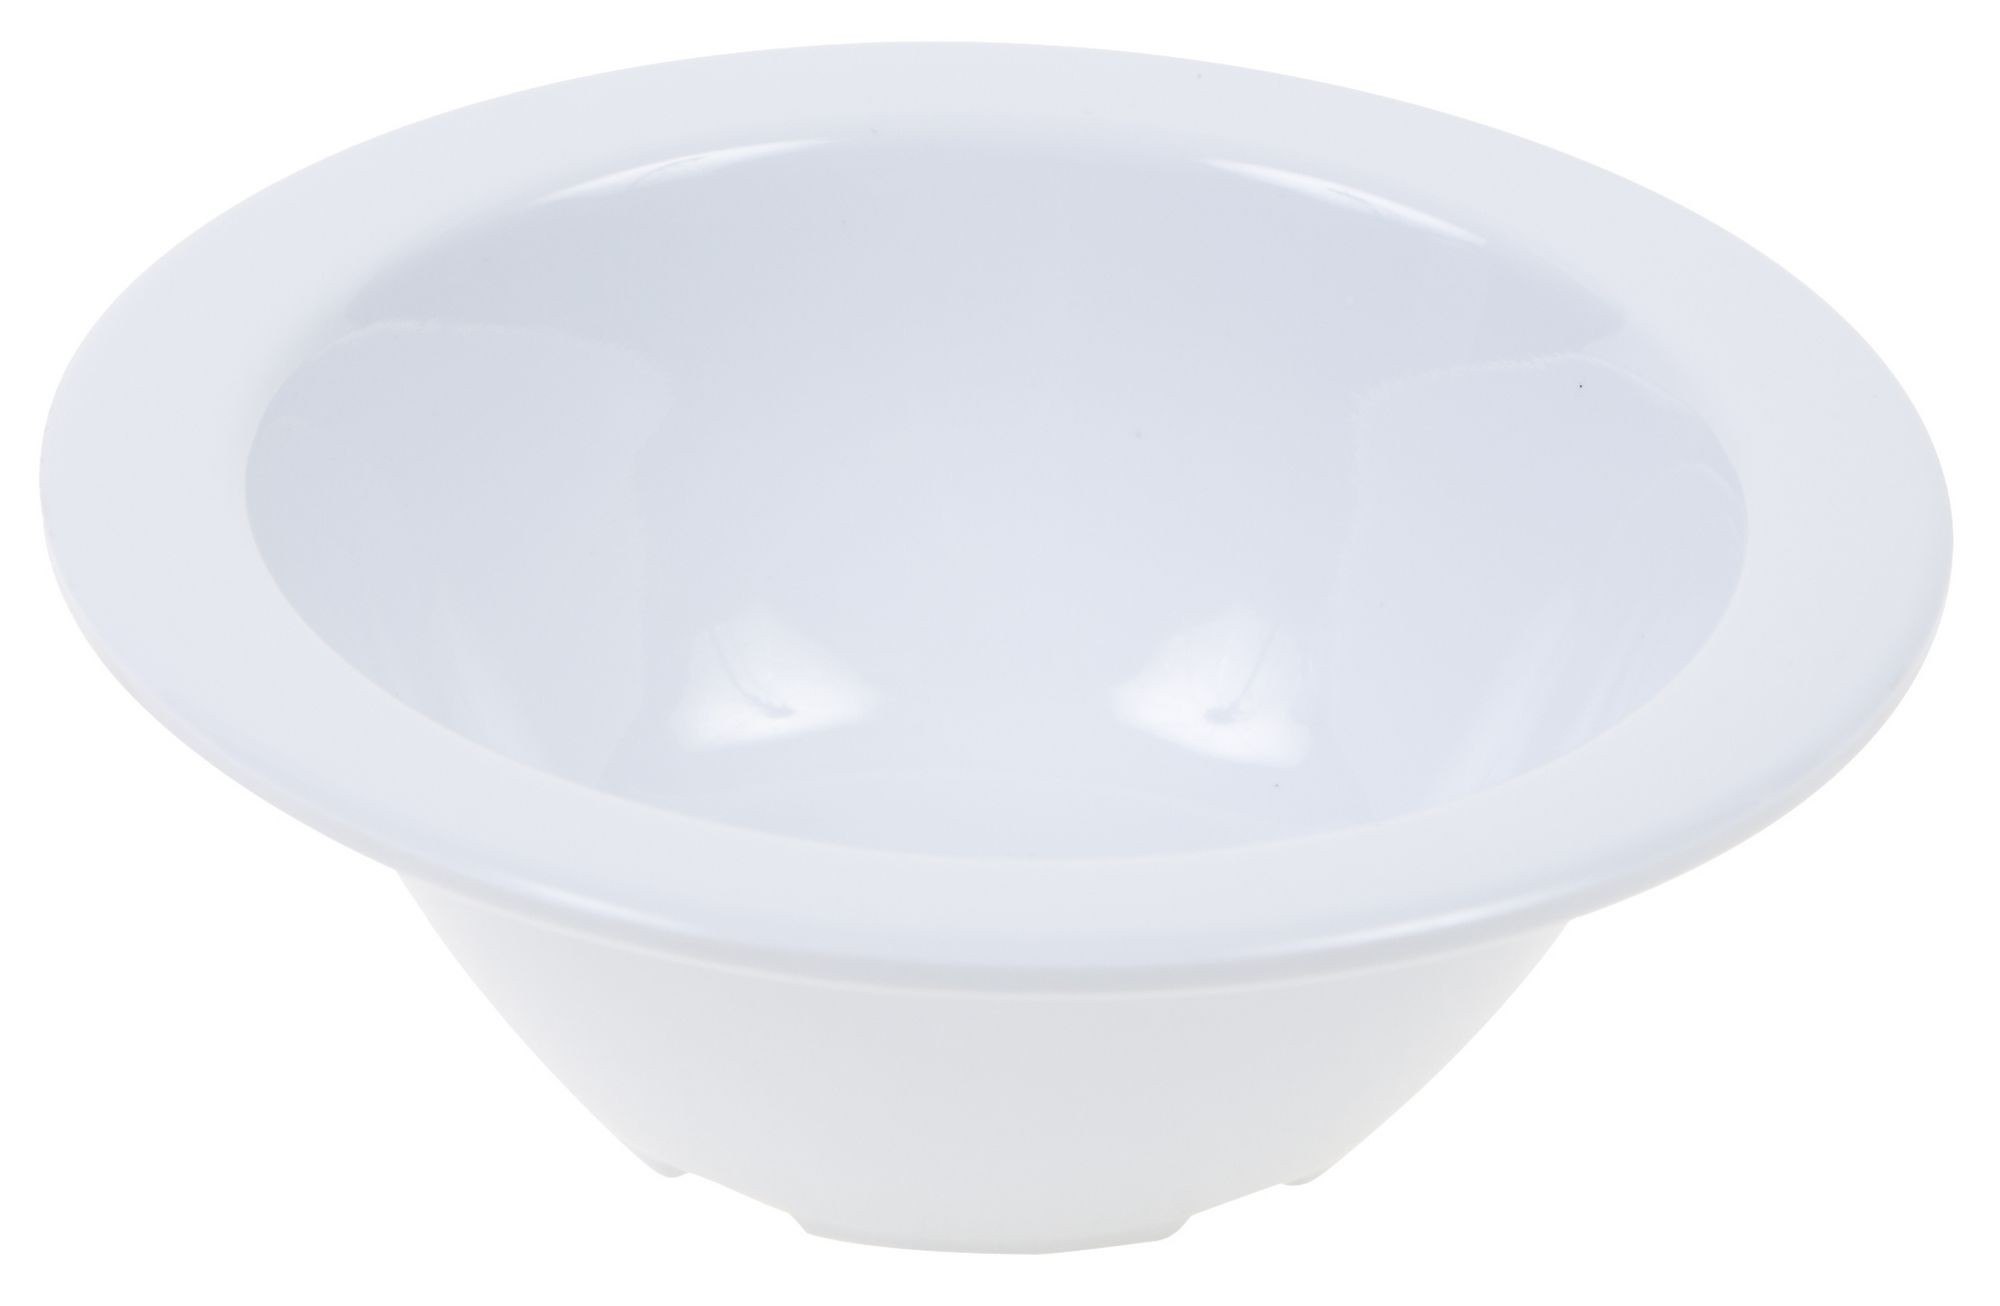 Winco mmb-4w White Melamine Fruit Bowl,4 oz.